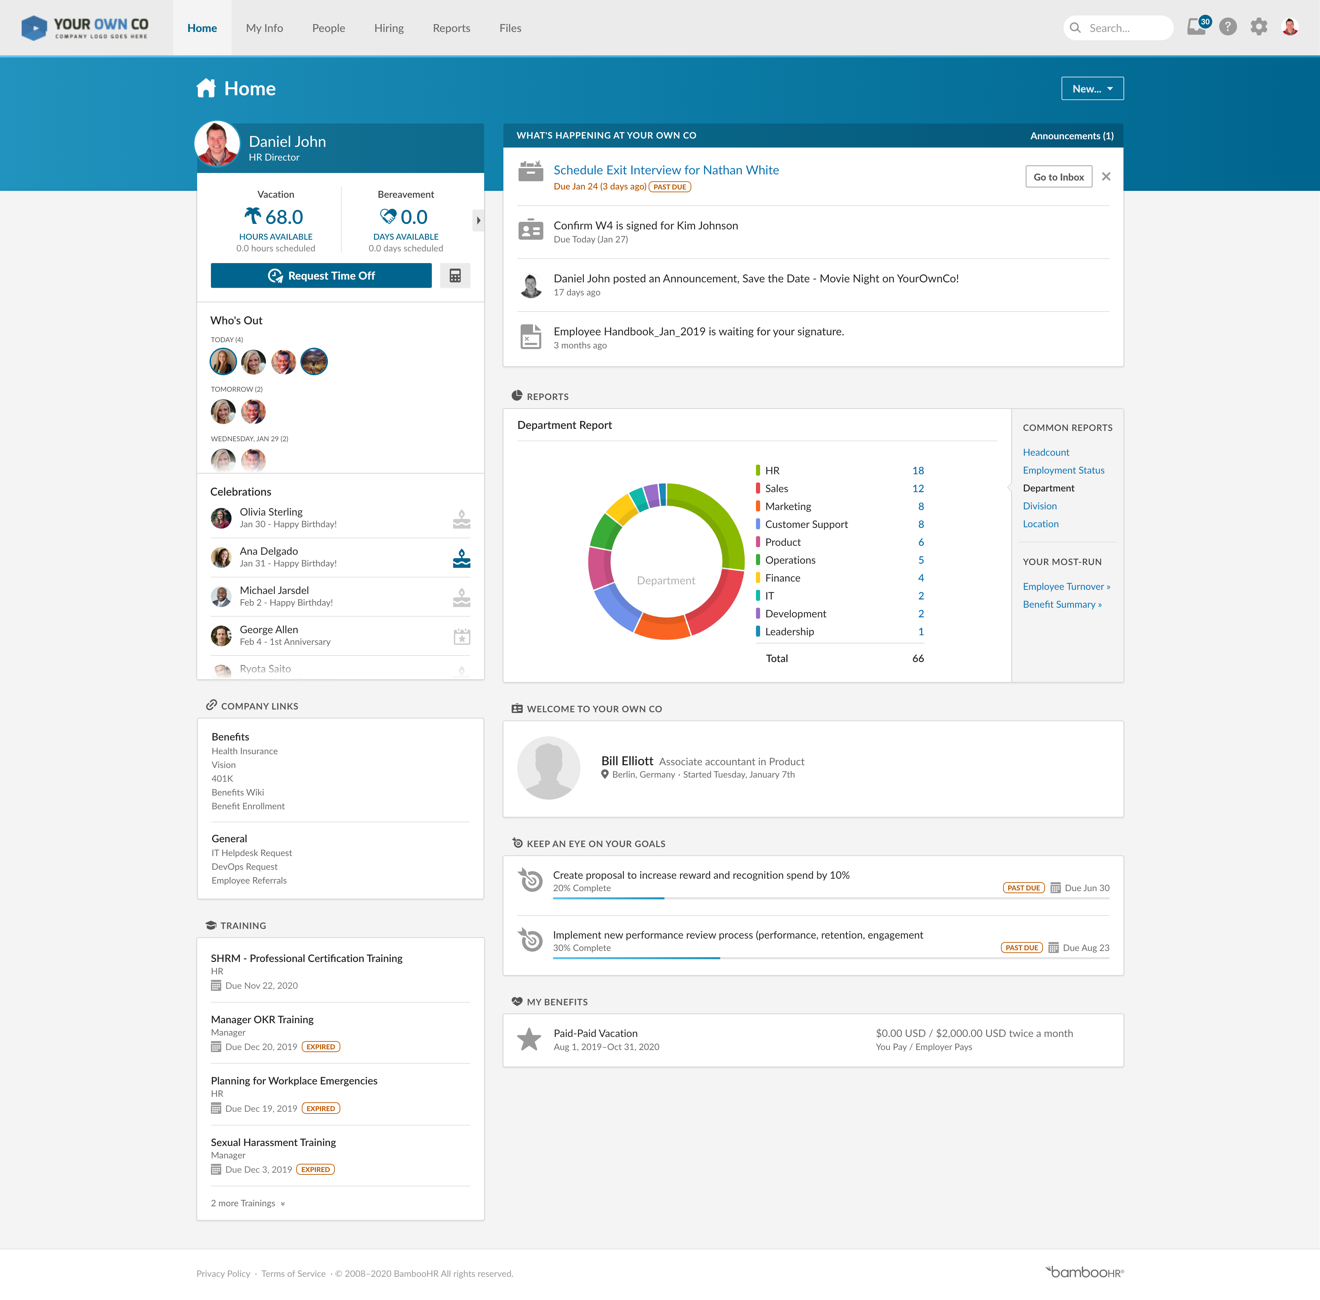 BambooHR Software - BambooHR Home - Employee View